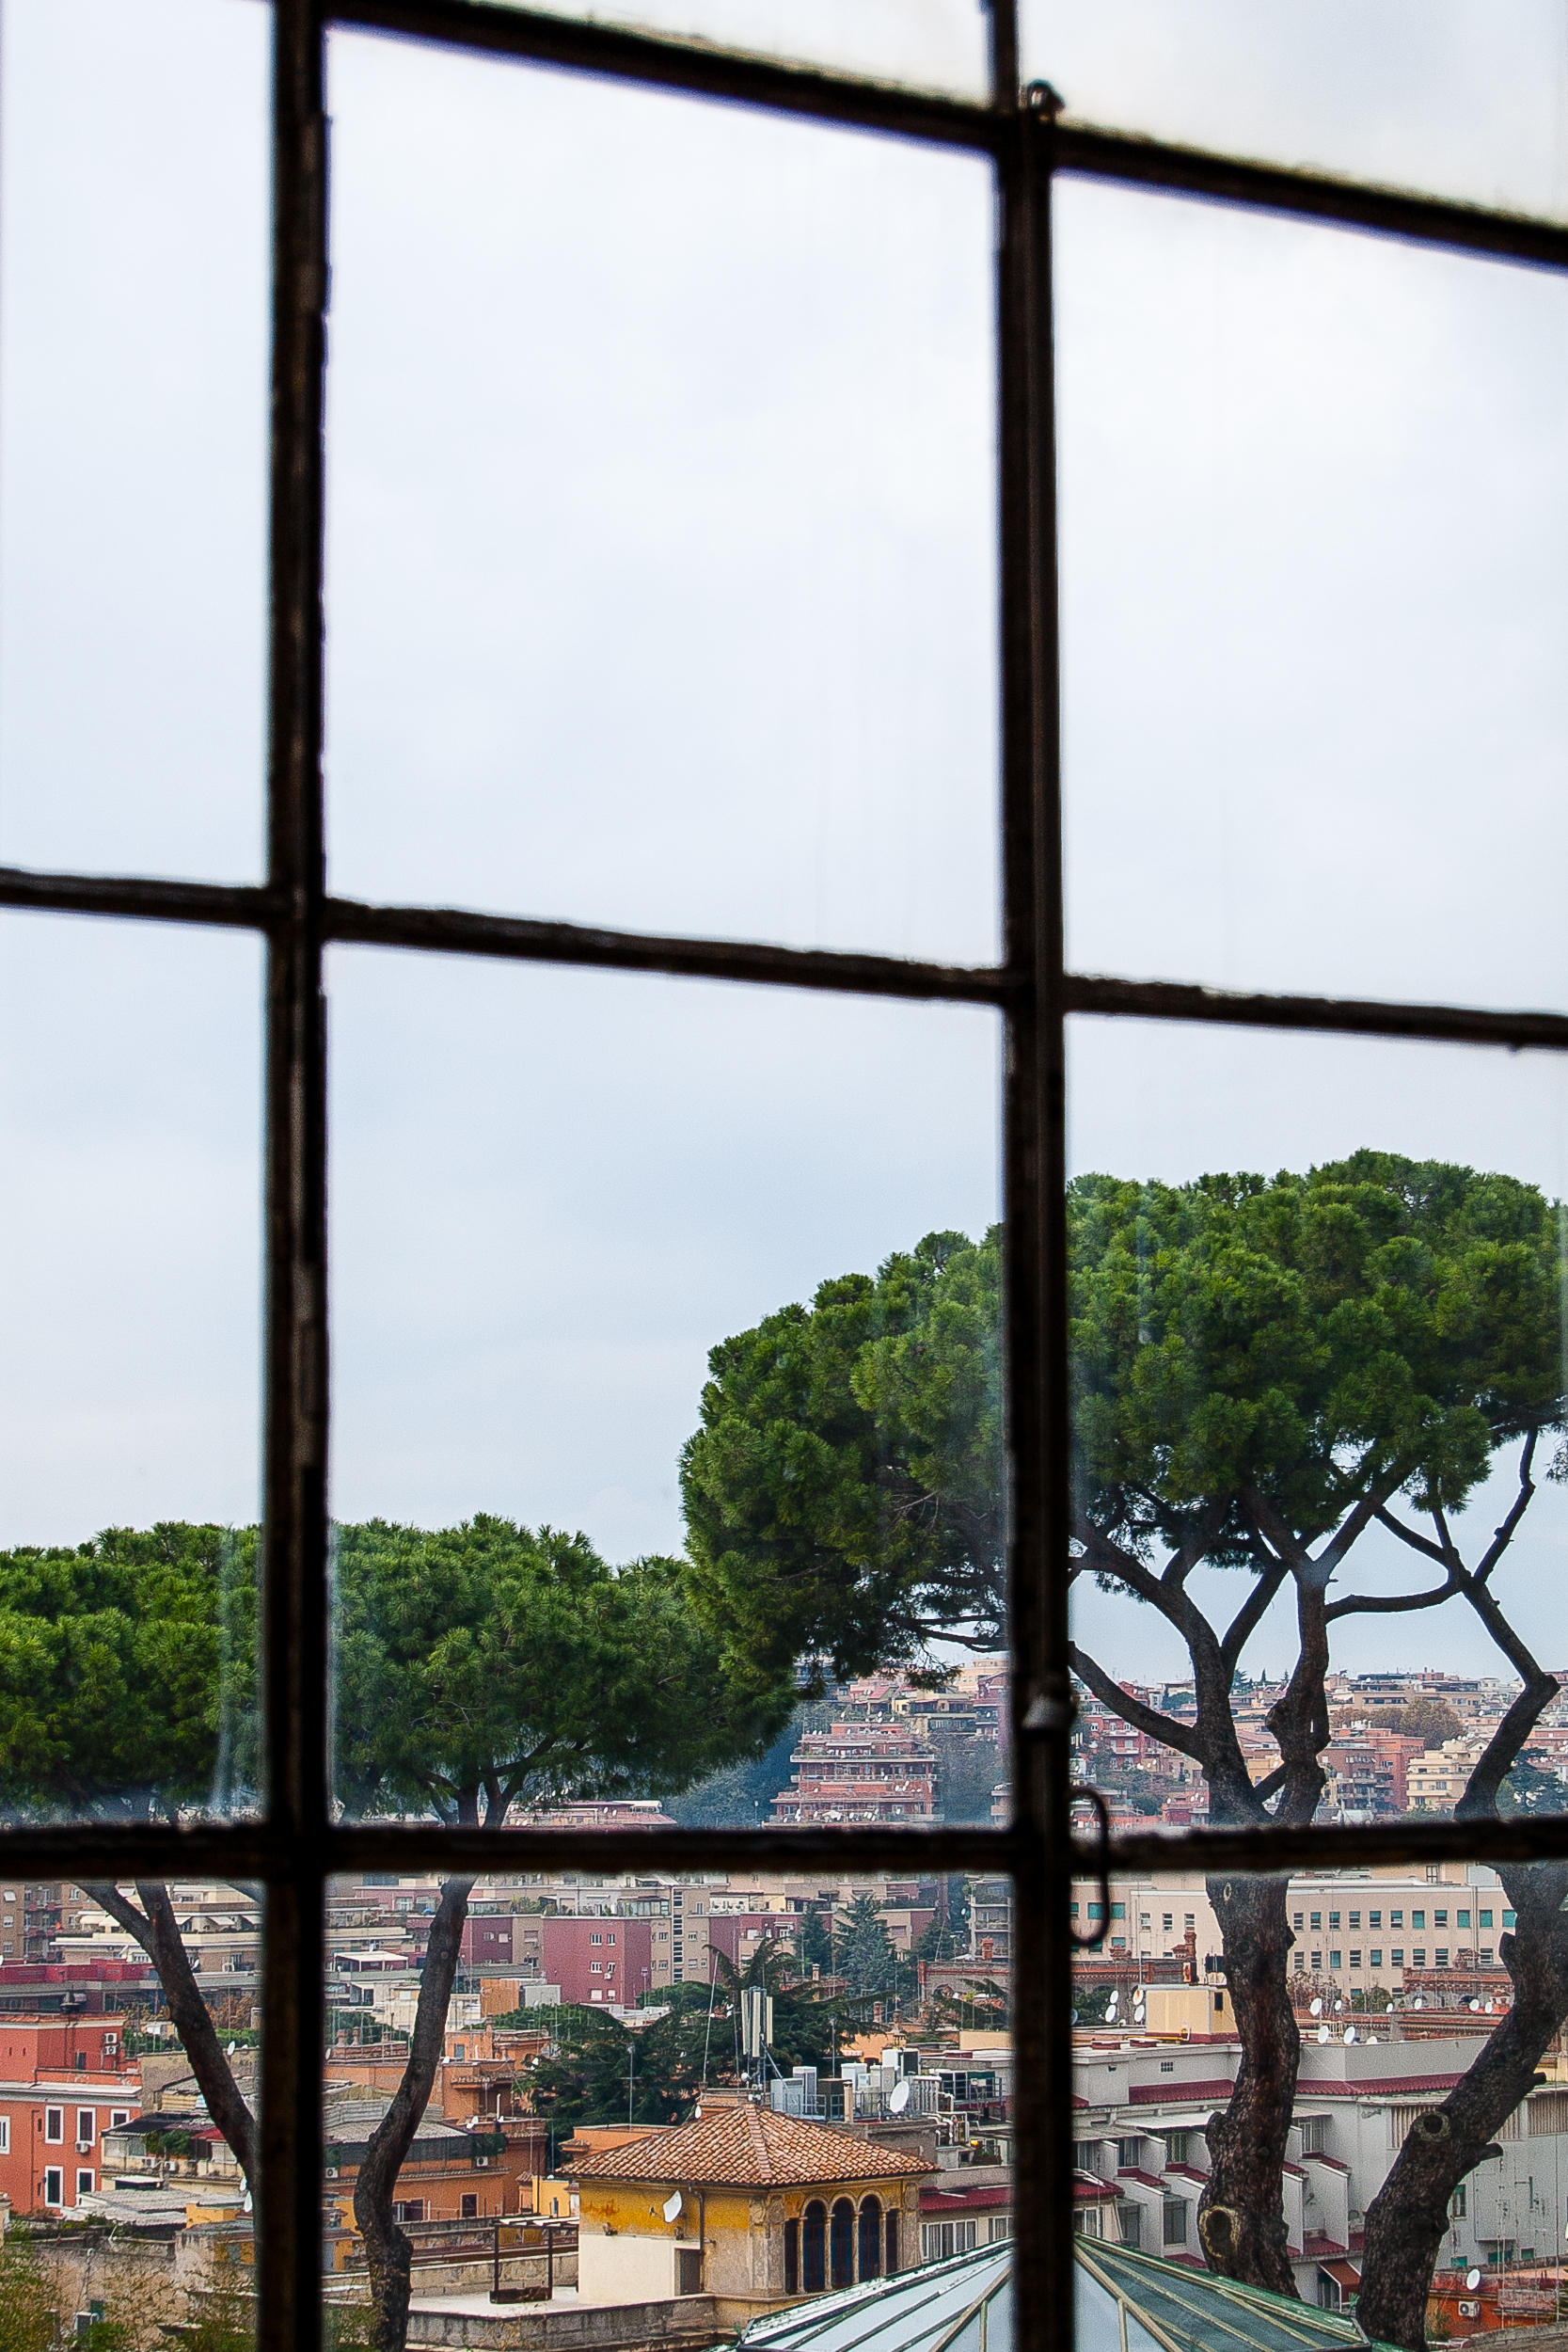 From inside the Vatican